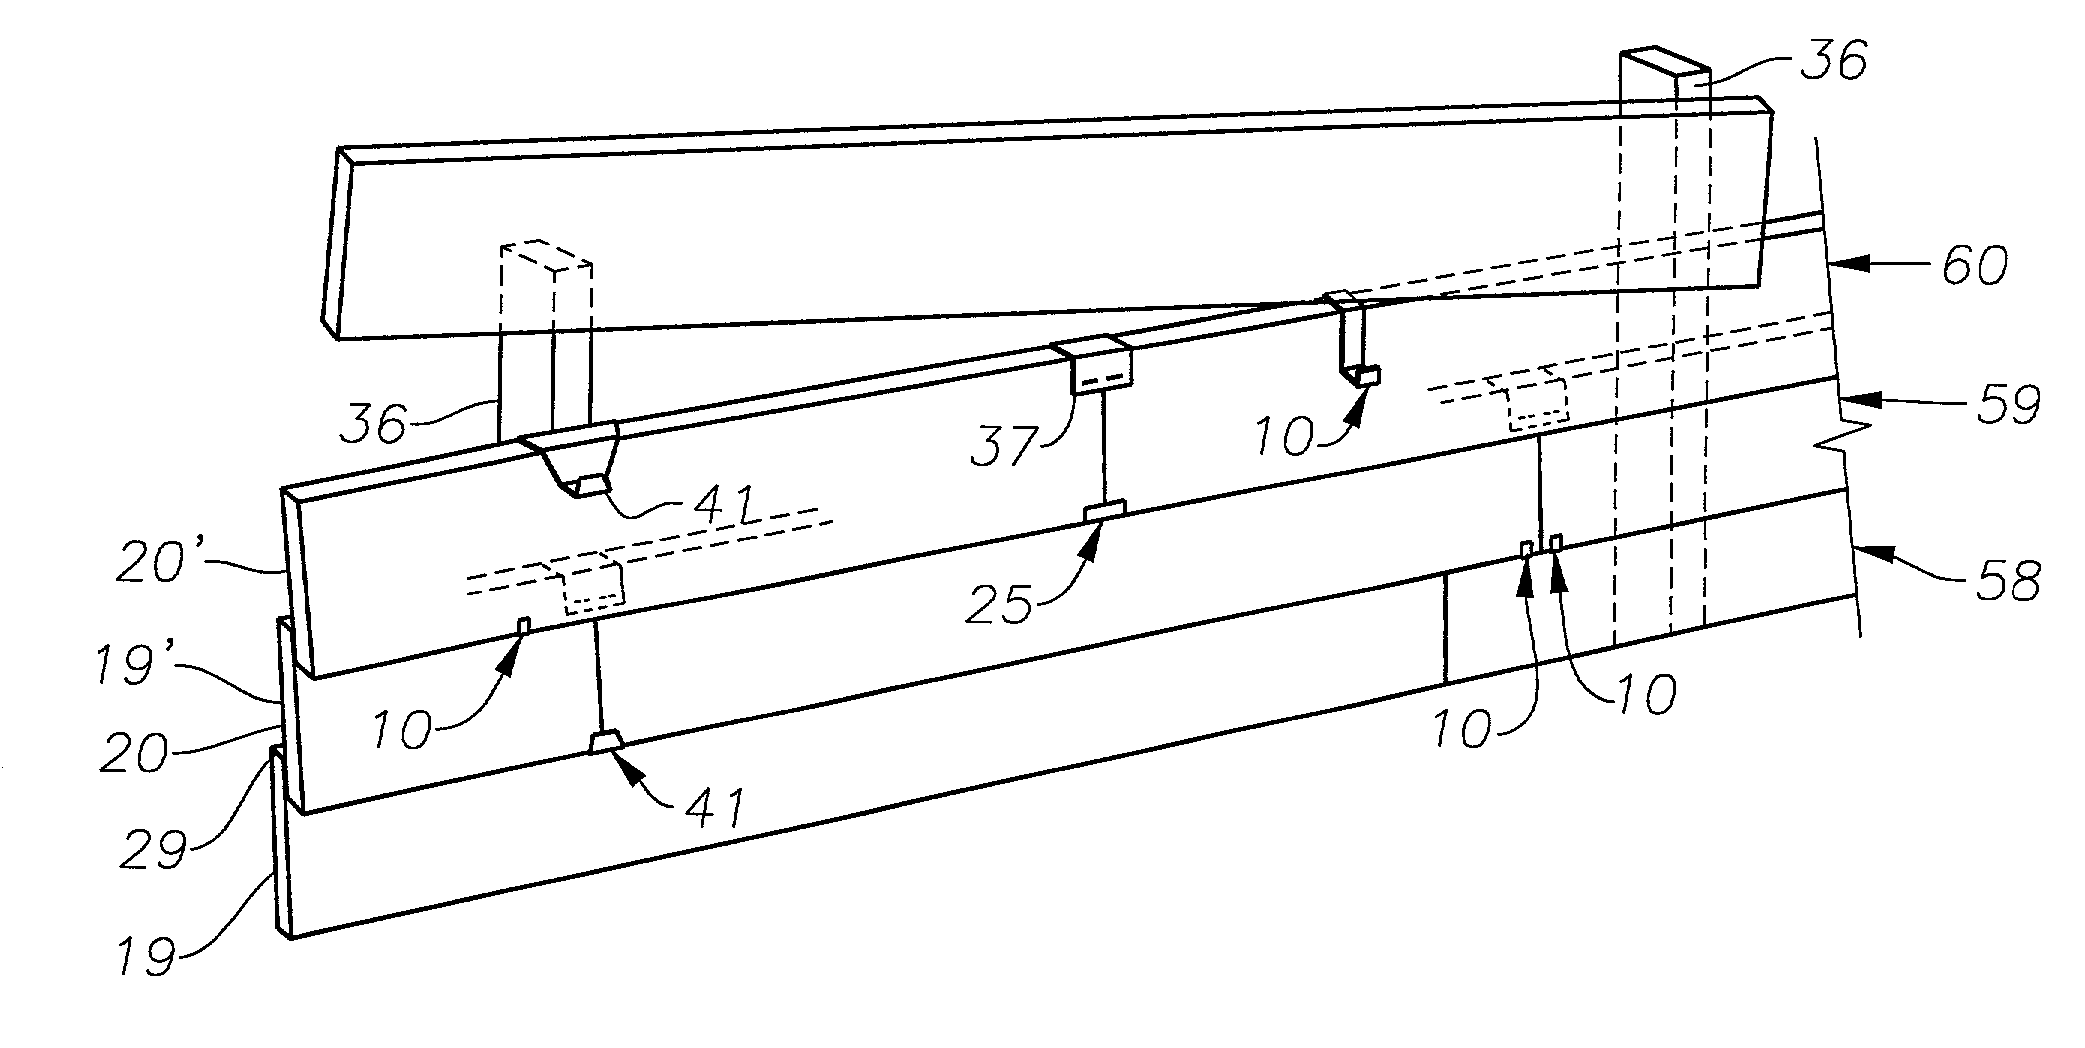 Drawn planks rapid Patent Drawing accurate  Patent